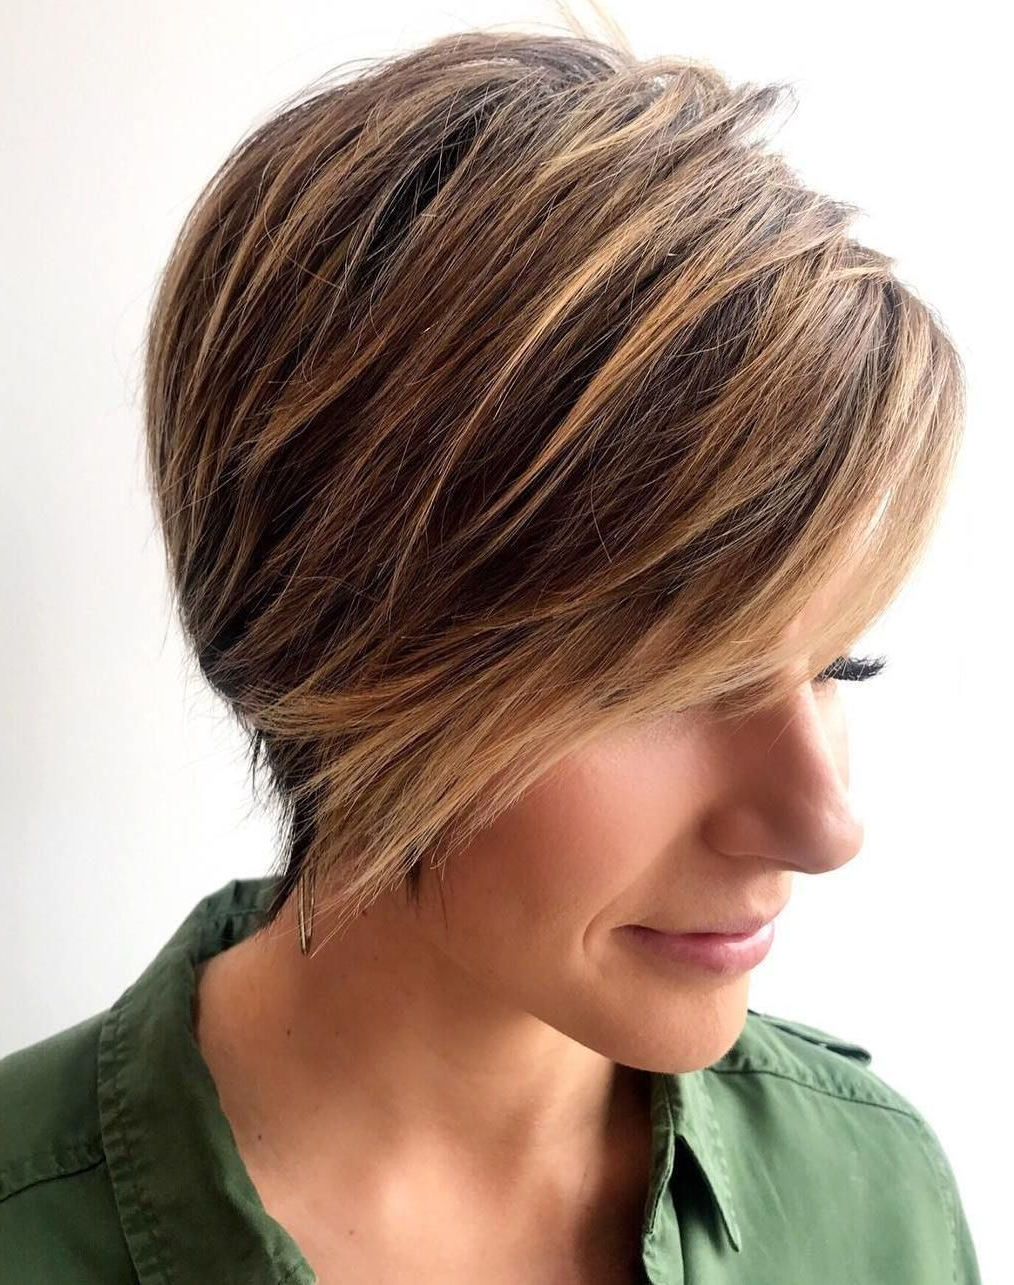 Pixie Haircuts With Bangs – 50 Terrific Tapers | Hair Styles Within Curly Pixie Haircuts With Highlights (View 17 of 20)